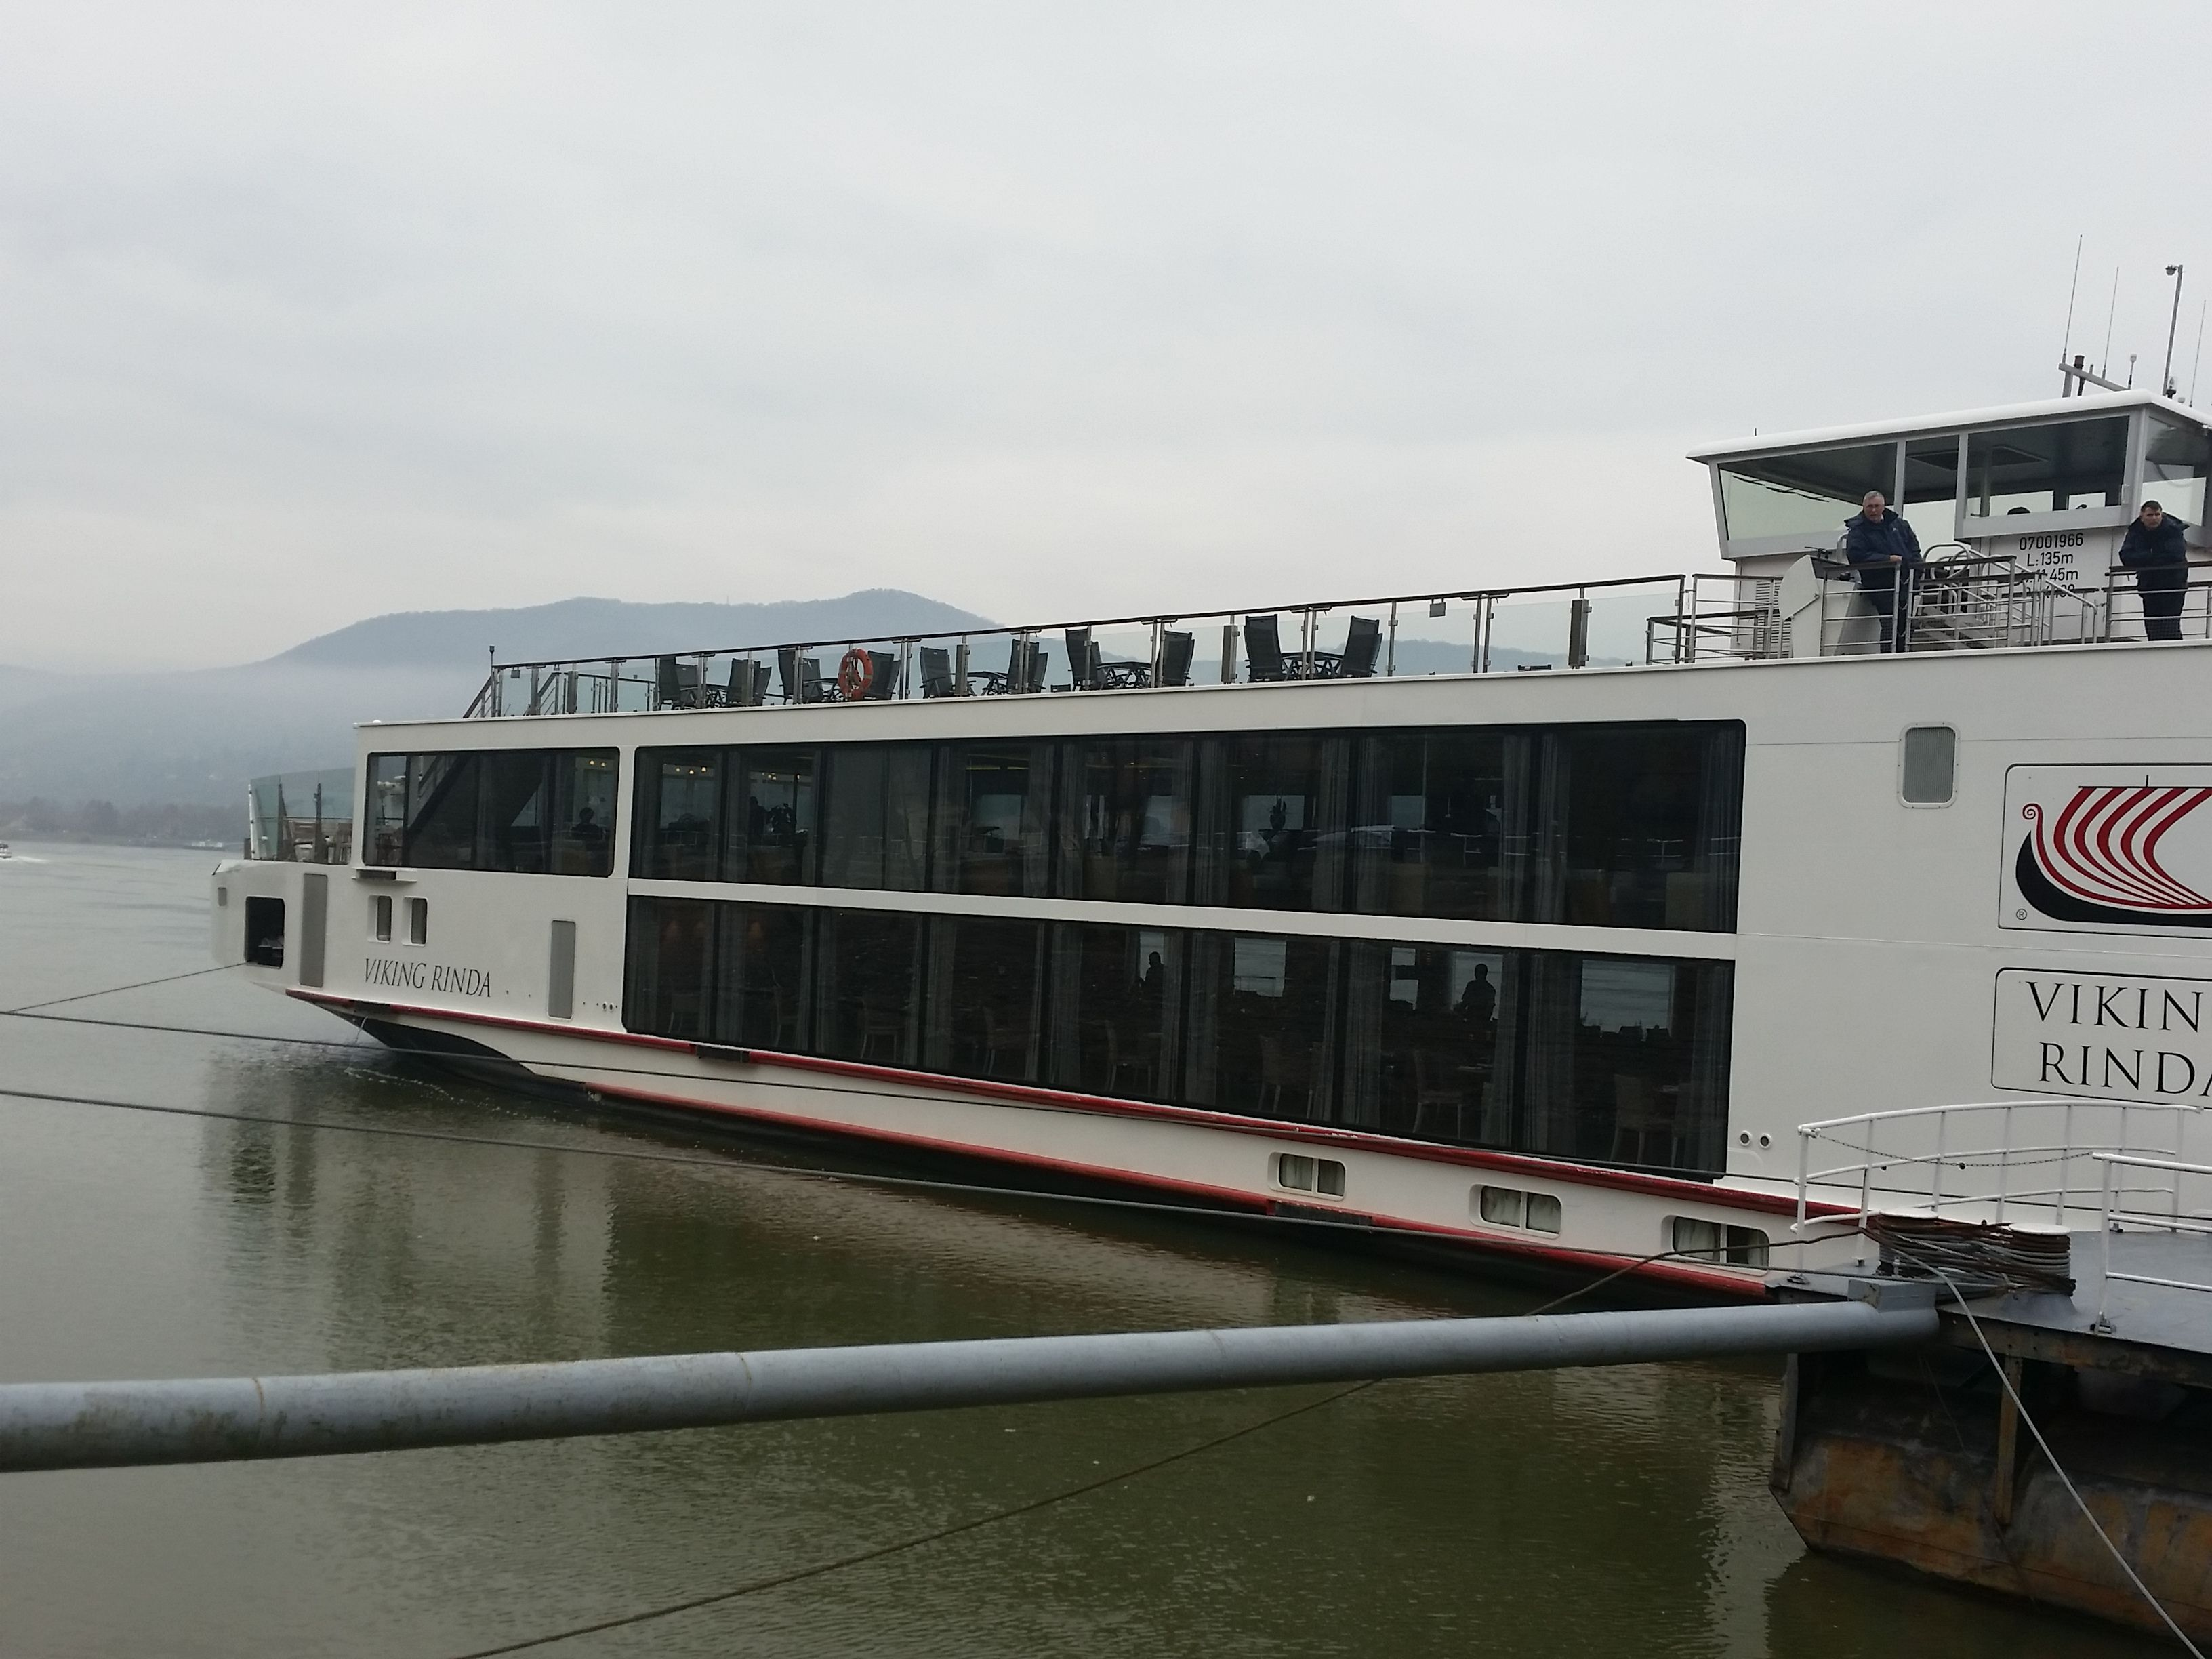 Viking Rinda One Of Viking River Cruises Longships On The River - Viking river cruise complaints